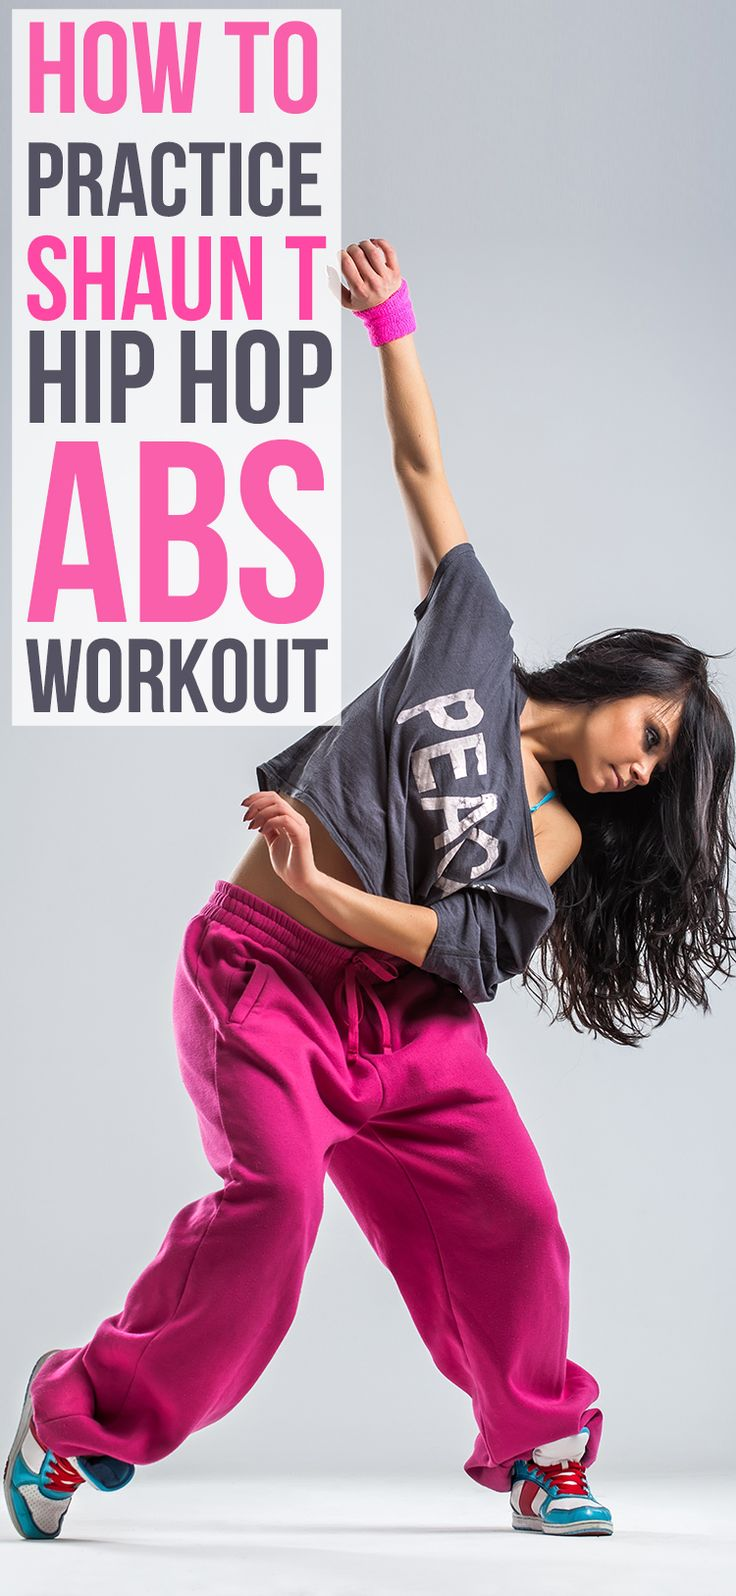 How To Practice Shaun T Hip Hop Abs Workout?